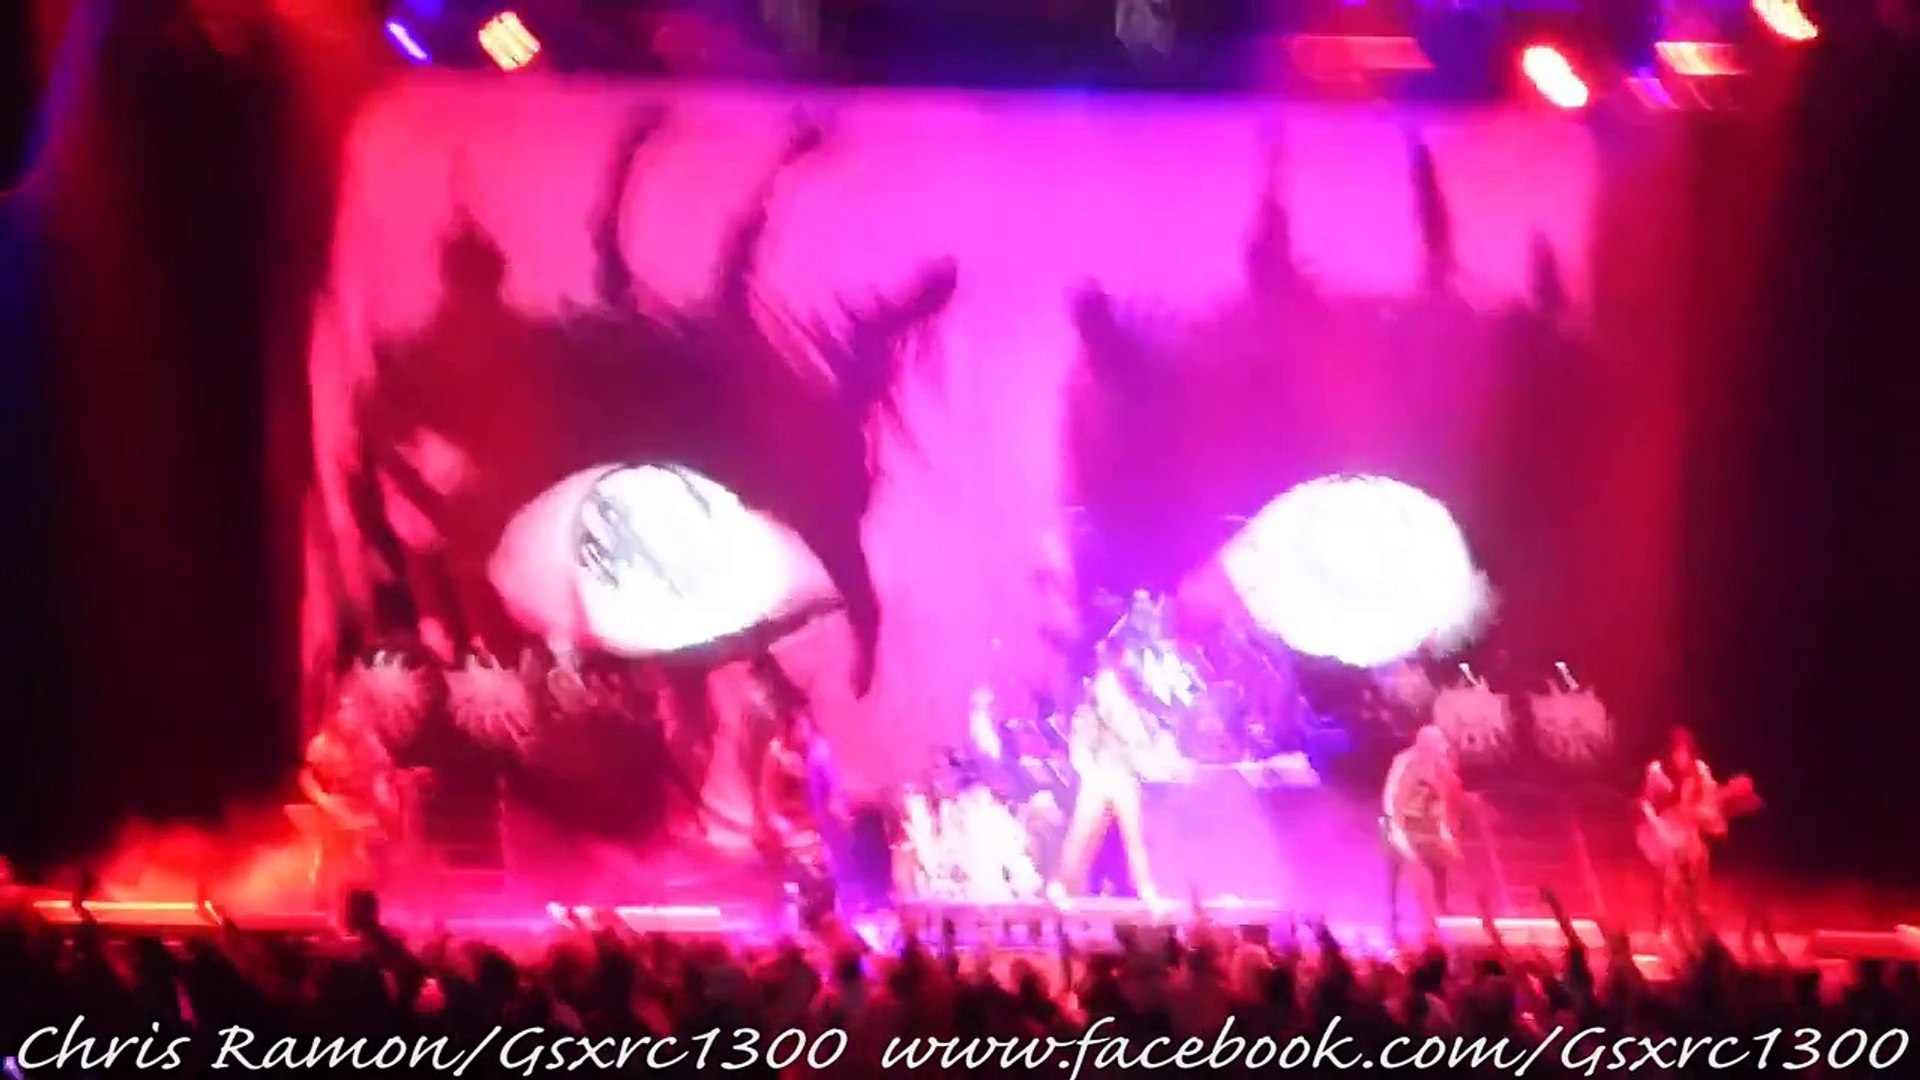 Alice Cooper - Dirty Diamonds (Bass, Drum, and Guitar Solos) LIVE San Antonio, Tx. 9/6/15 [HD]